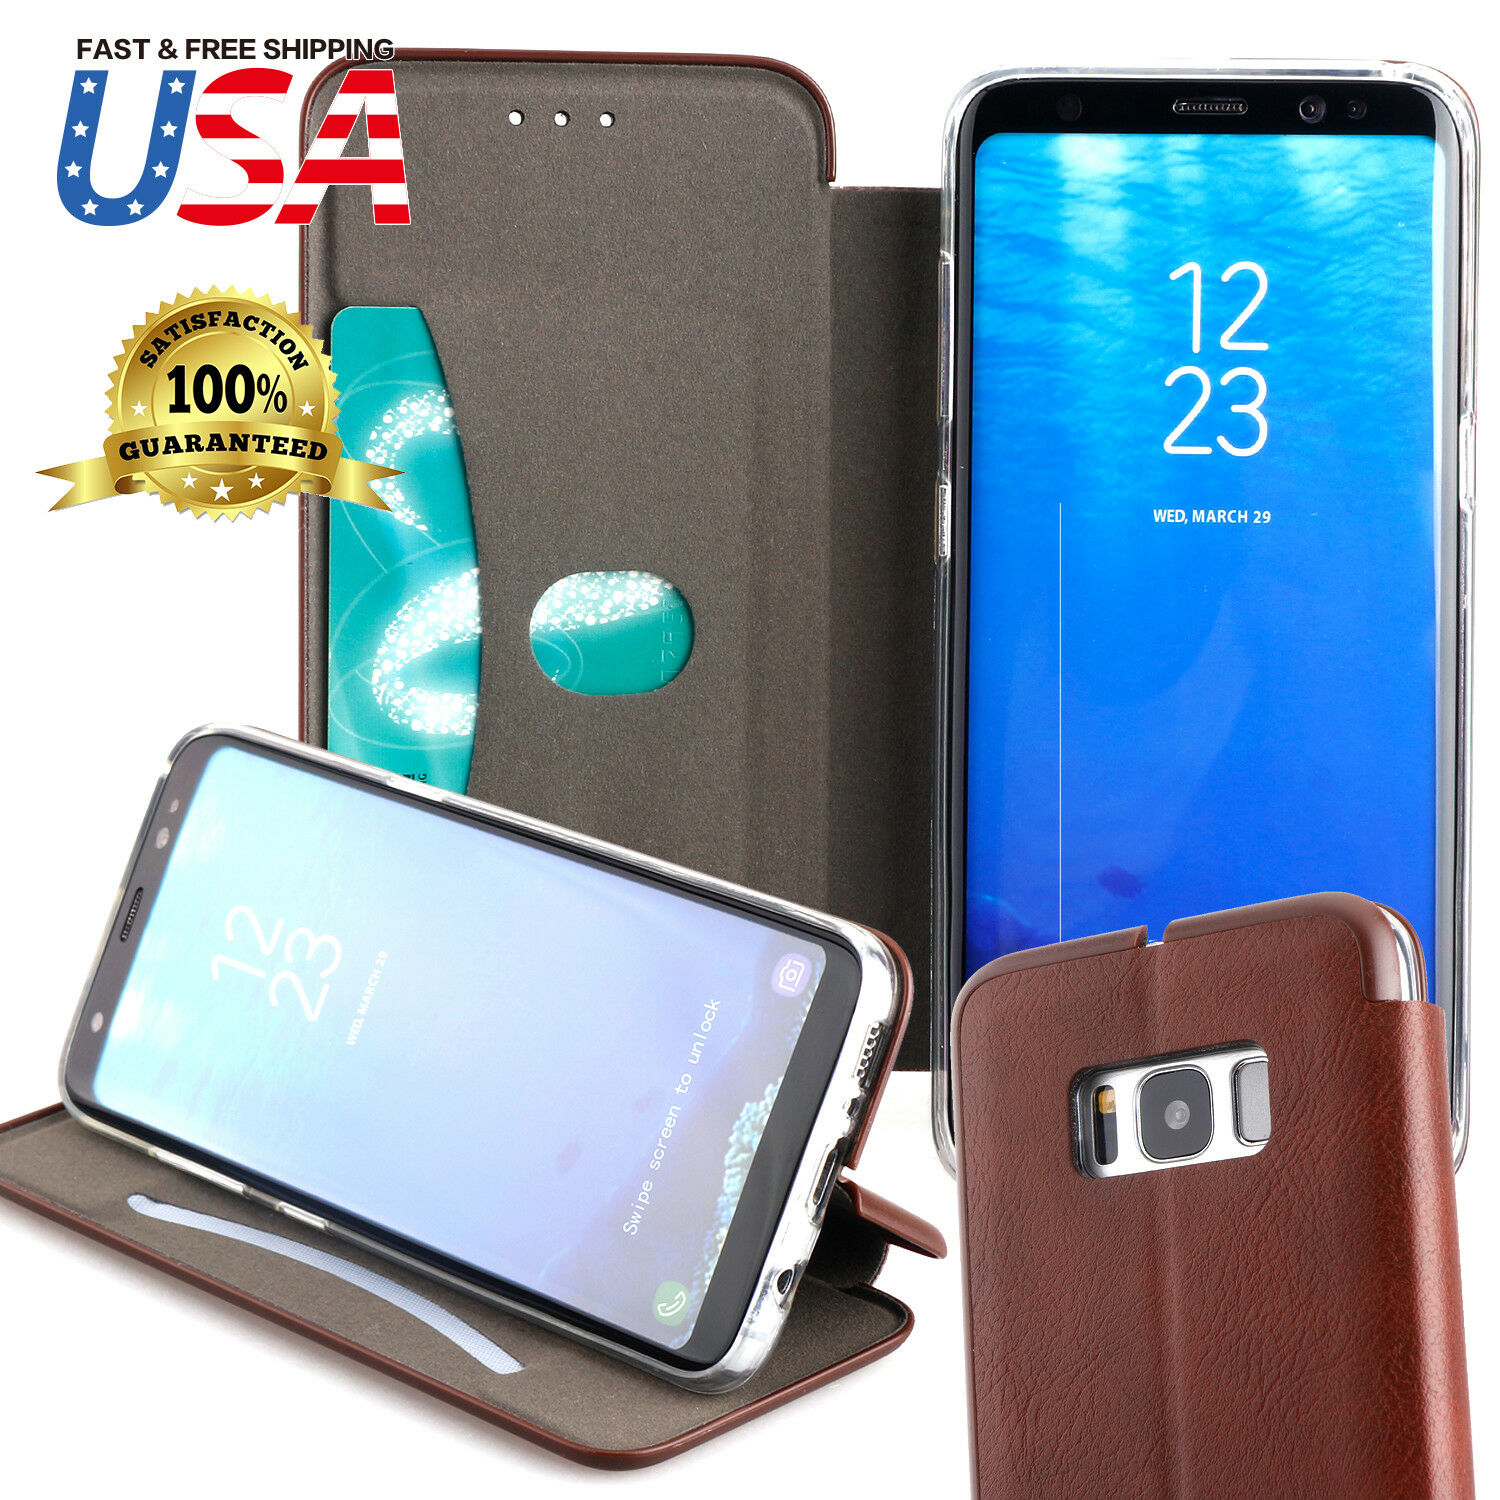 Cases Covers Skins Cell Phone Accessories Phones Goospery Samsung Galaxy Grand Prime Canvas Diary Case Green For S8 Plus Note8 Genuine Leather Card Slots Wallet Shockproof Cover